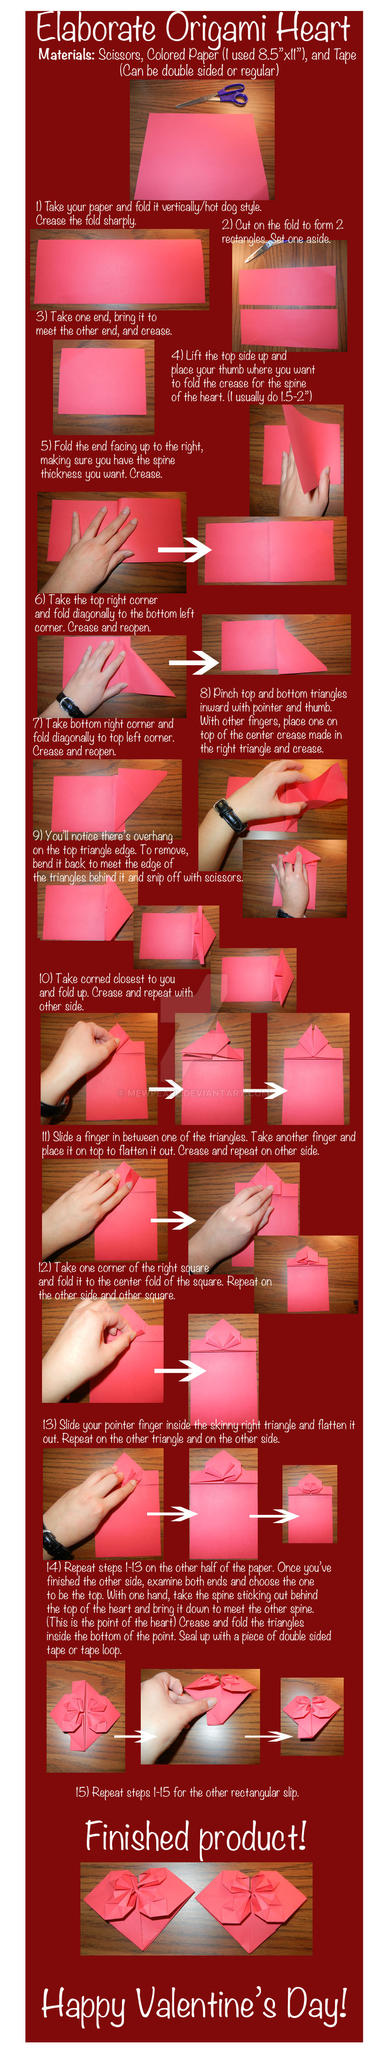 Elaborate Origami Heart Tutorial by mewpearl